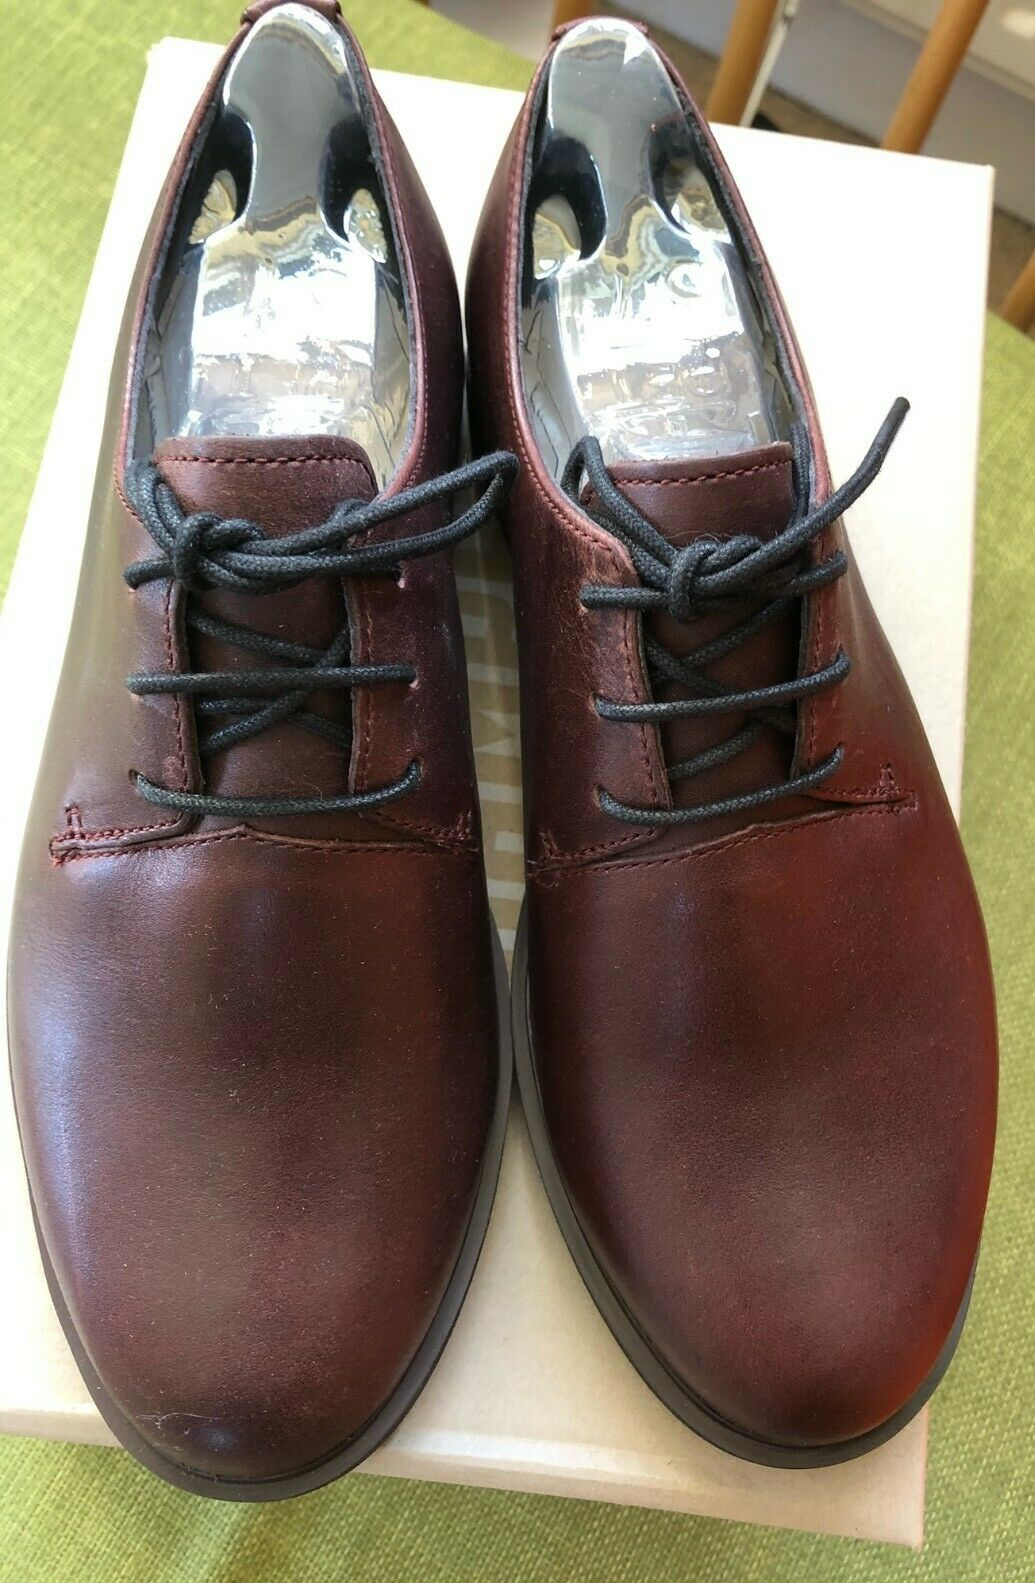 Camper brown shoes size 4/37 NEW WITH BOX